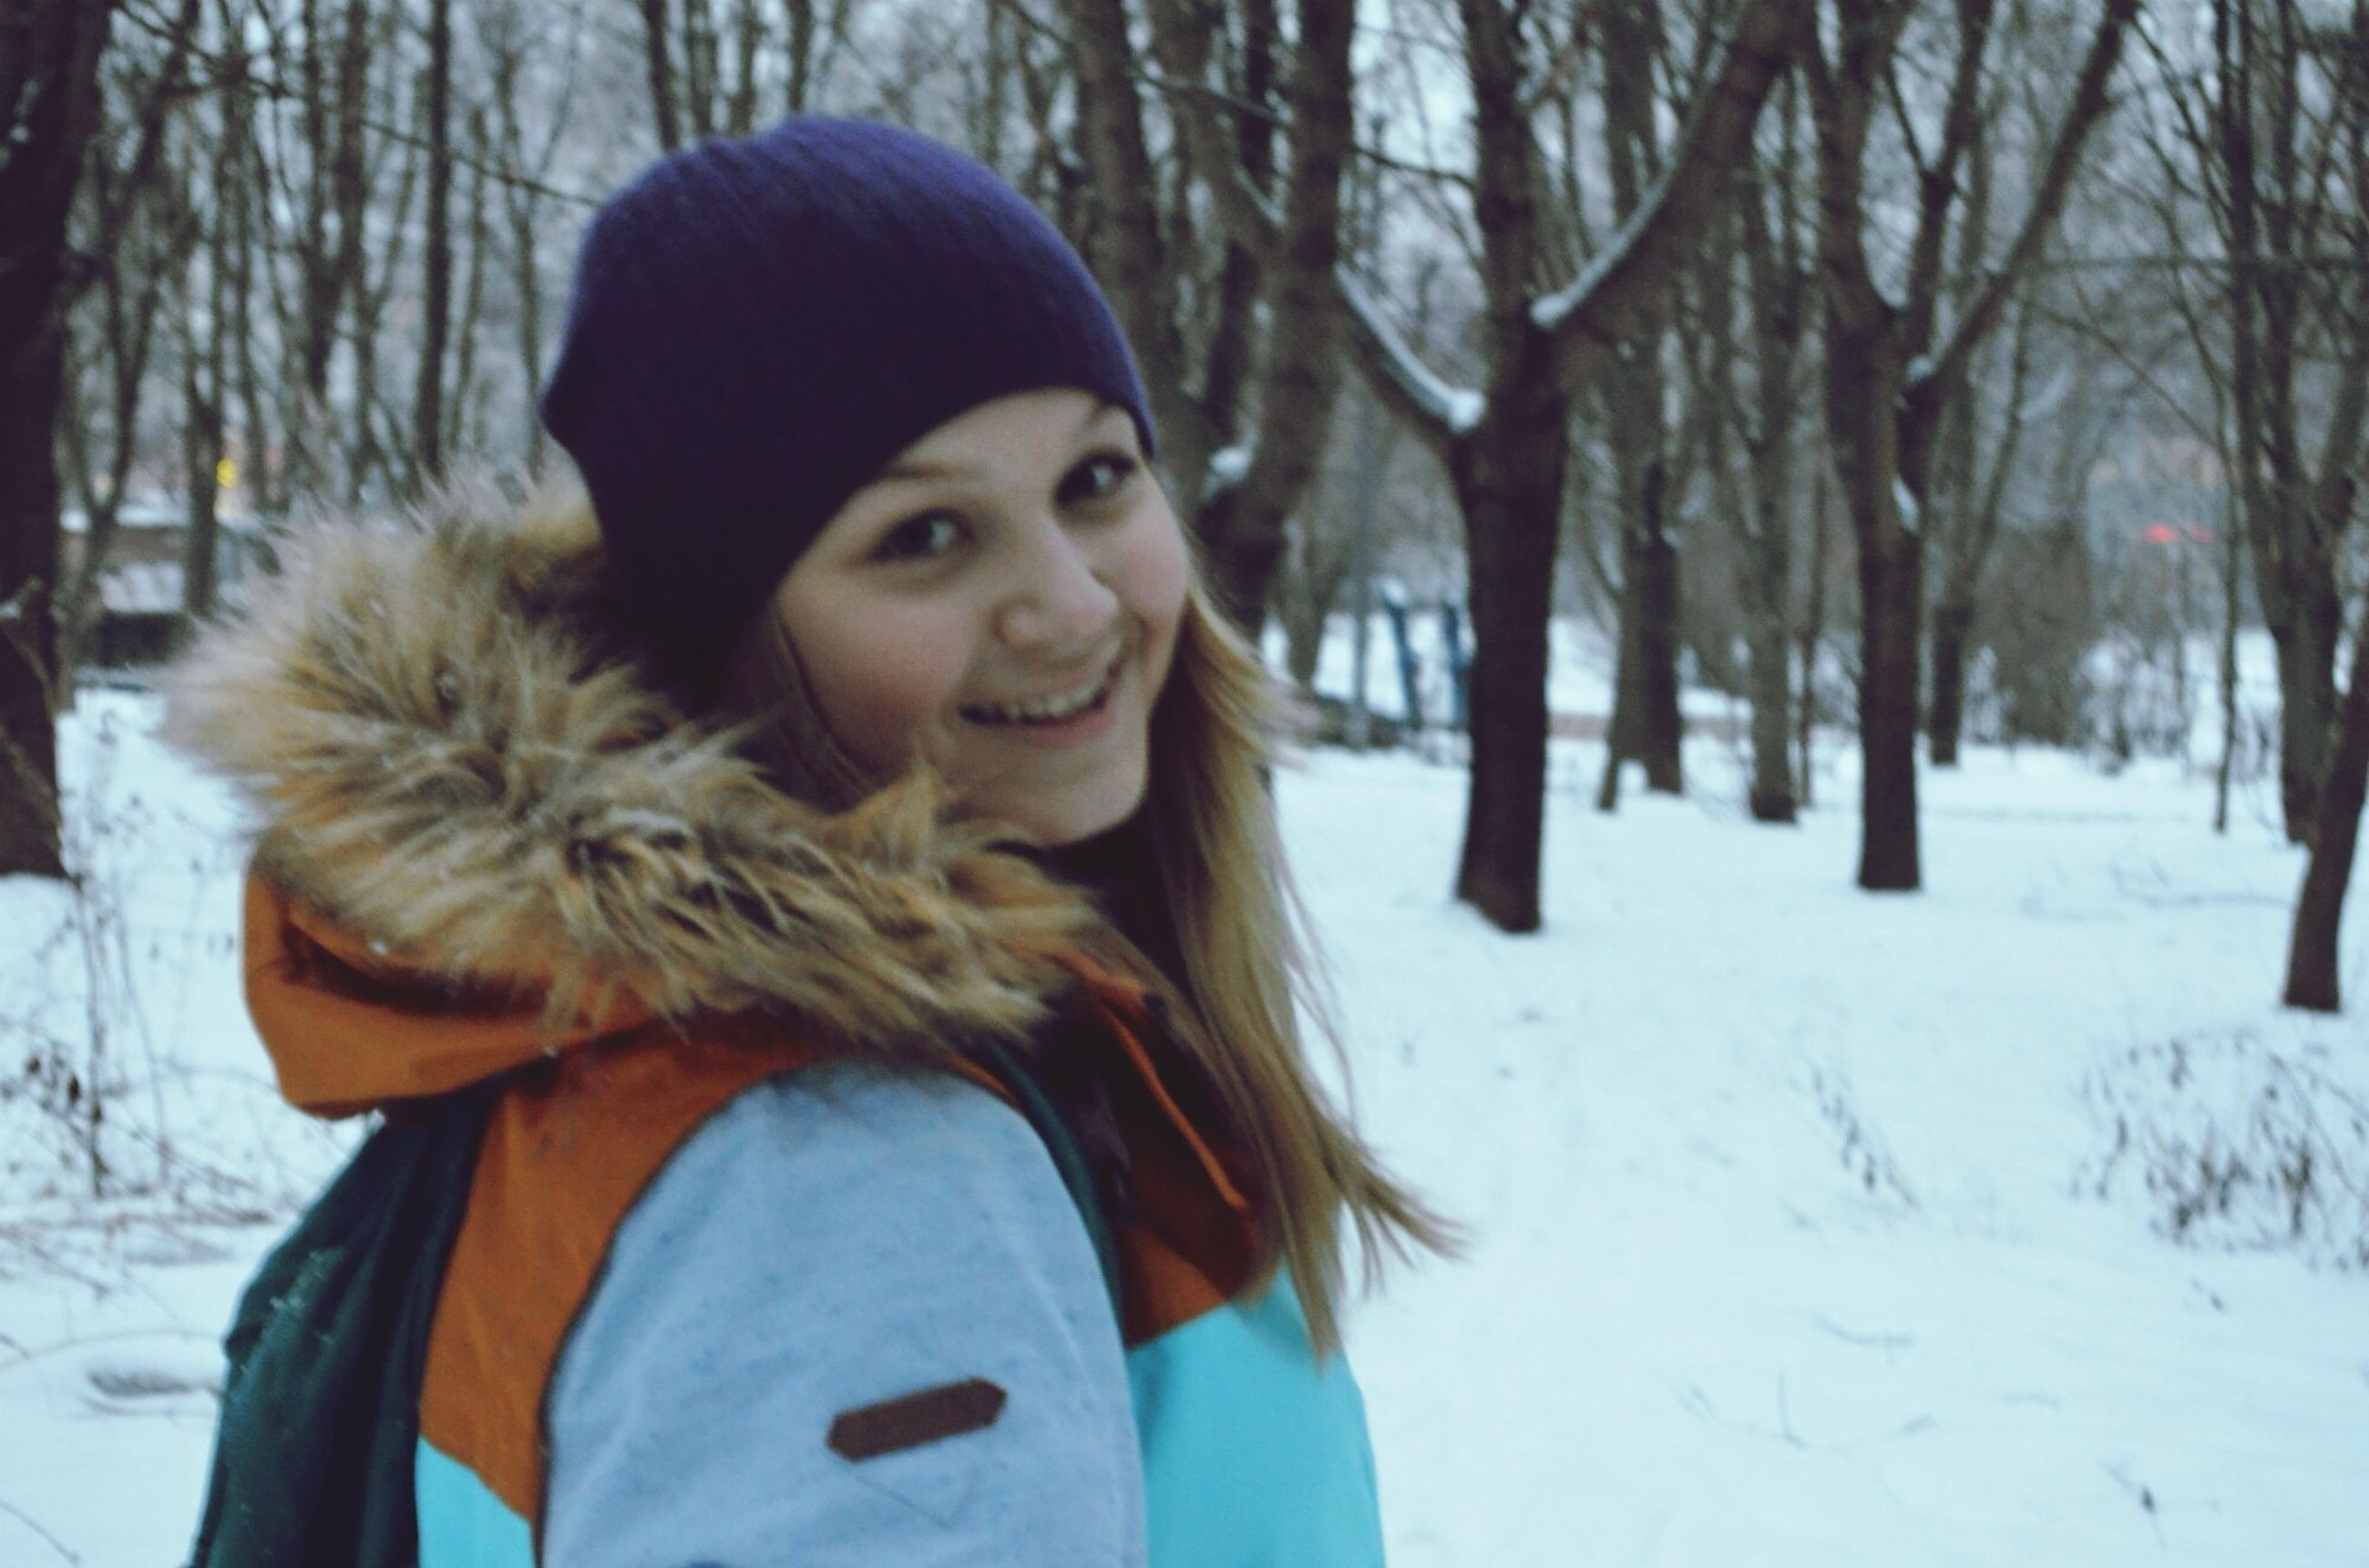 winter, snow, cold temperature, season, warm clothing, weather, tree, covering, person, lifestyles, portrait, looking at camera, front view, focus on foreground, leisure activity, young adult, young women, long hair